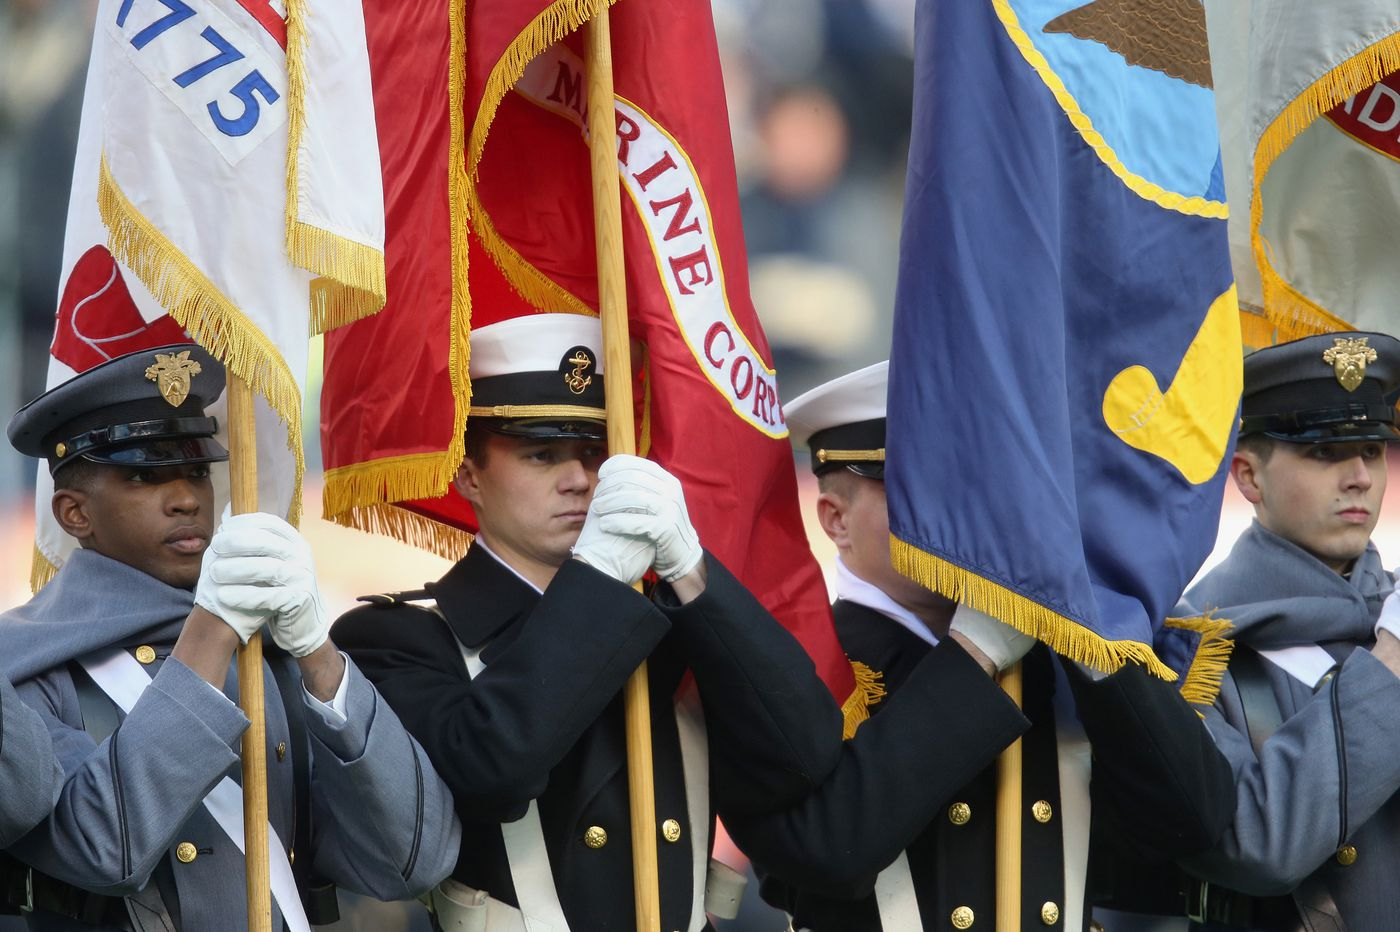 Trump will be at the Army-Navy Game in Philly. From traffic to special events, here's what you need to know.